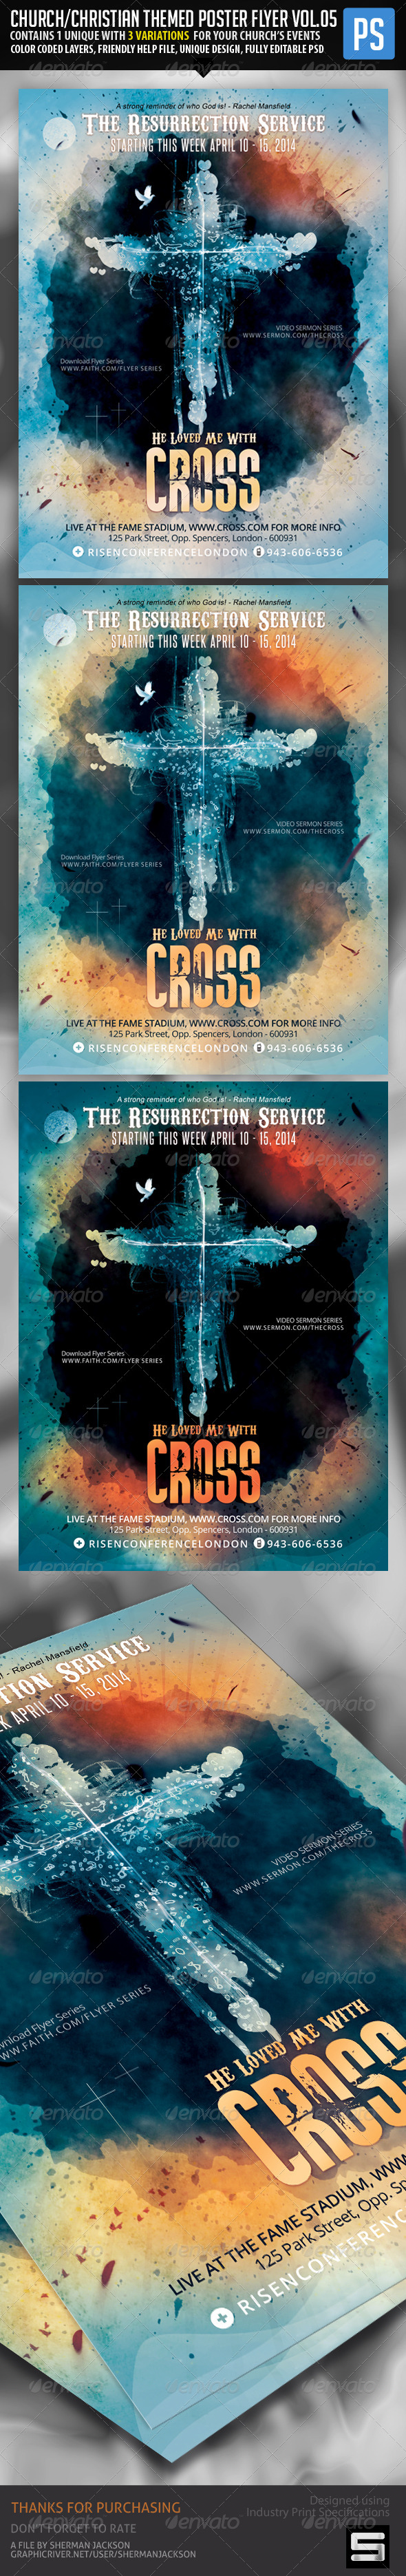 Church/Christian Themed Poster/Flyer Vol.5 - Church Flyers